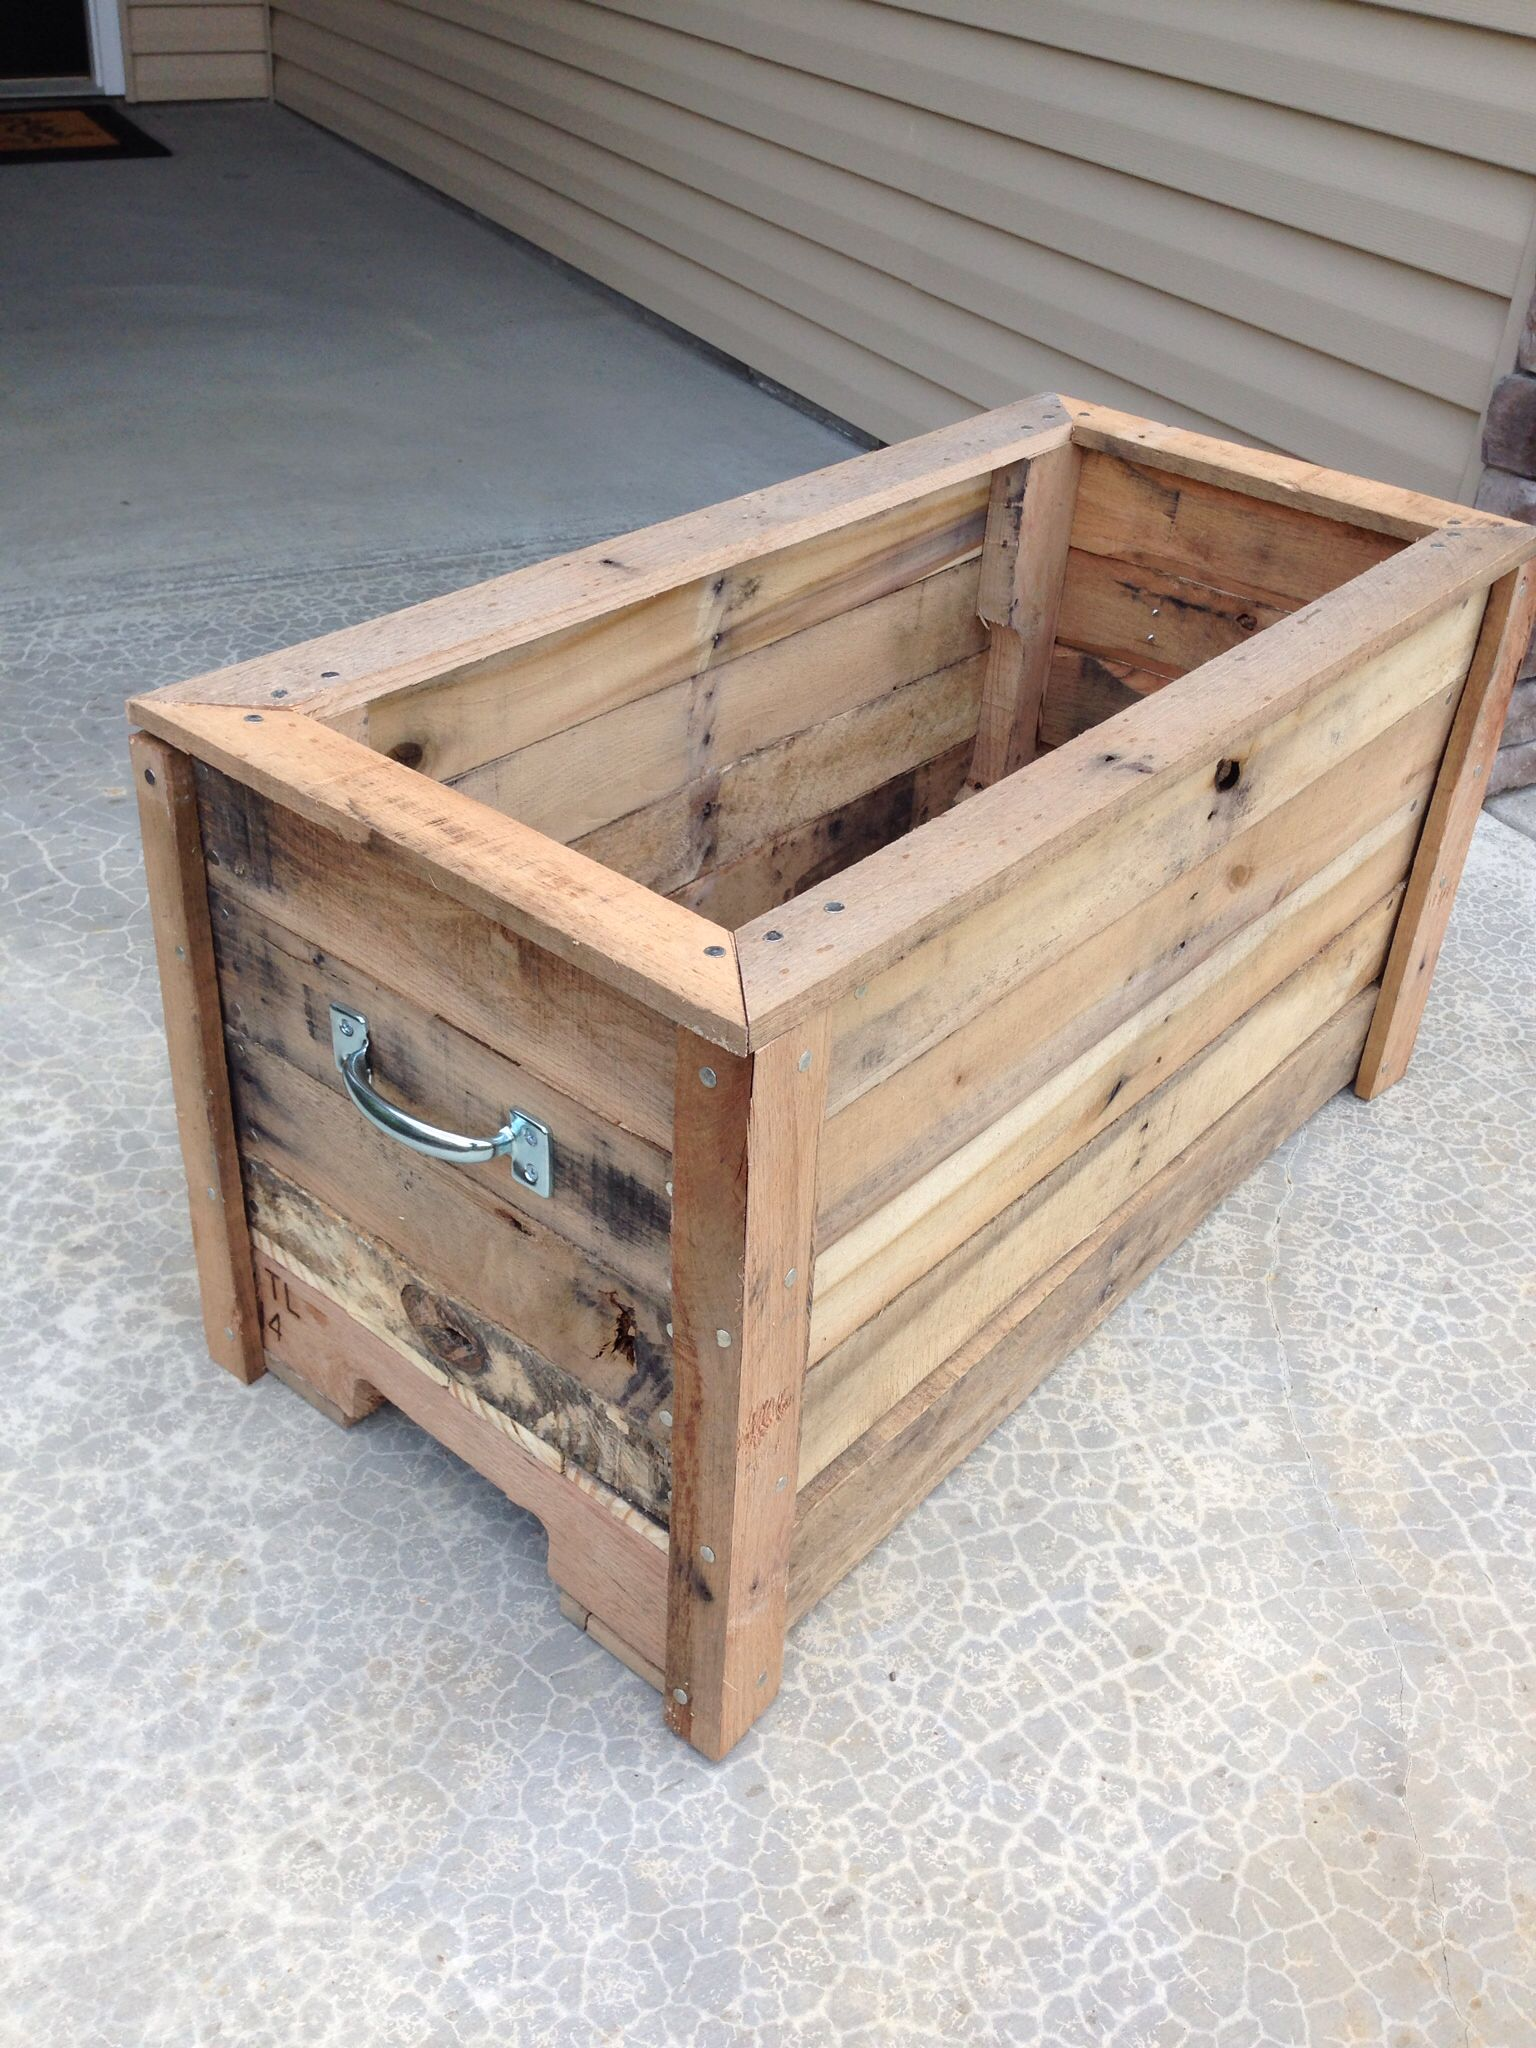 Planter Box Made Out Of 2x4 Scraps Pallet Projects Diy Garden Scrap Wood Projects Pallet Projects Diy Easy